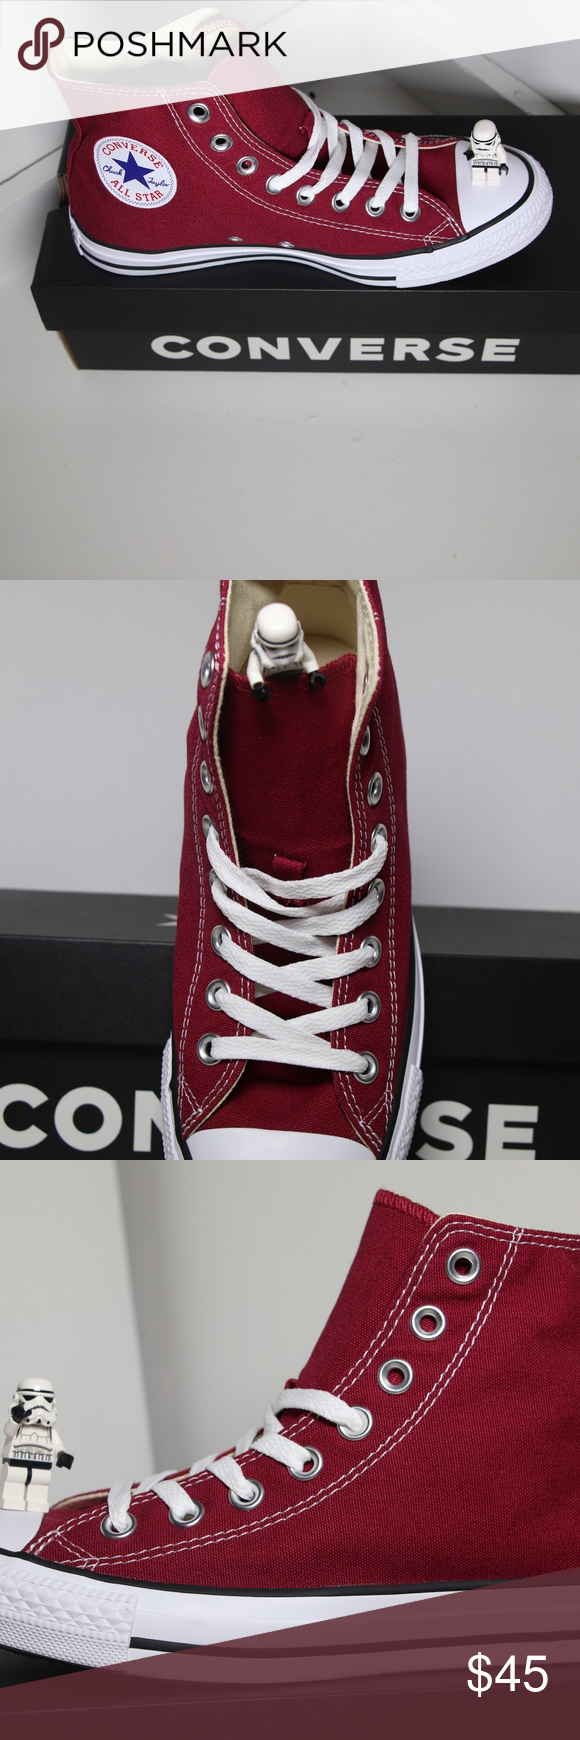 036f8478c562 Maroon Classic Converse All Star High Top BRAND NEW in ORIGINAL BOX  100%  AUTHENTIC. More sizes available (listed below) in LOW TOPS   HIGH TOPS in  Black